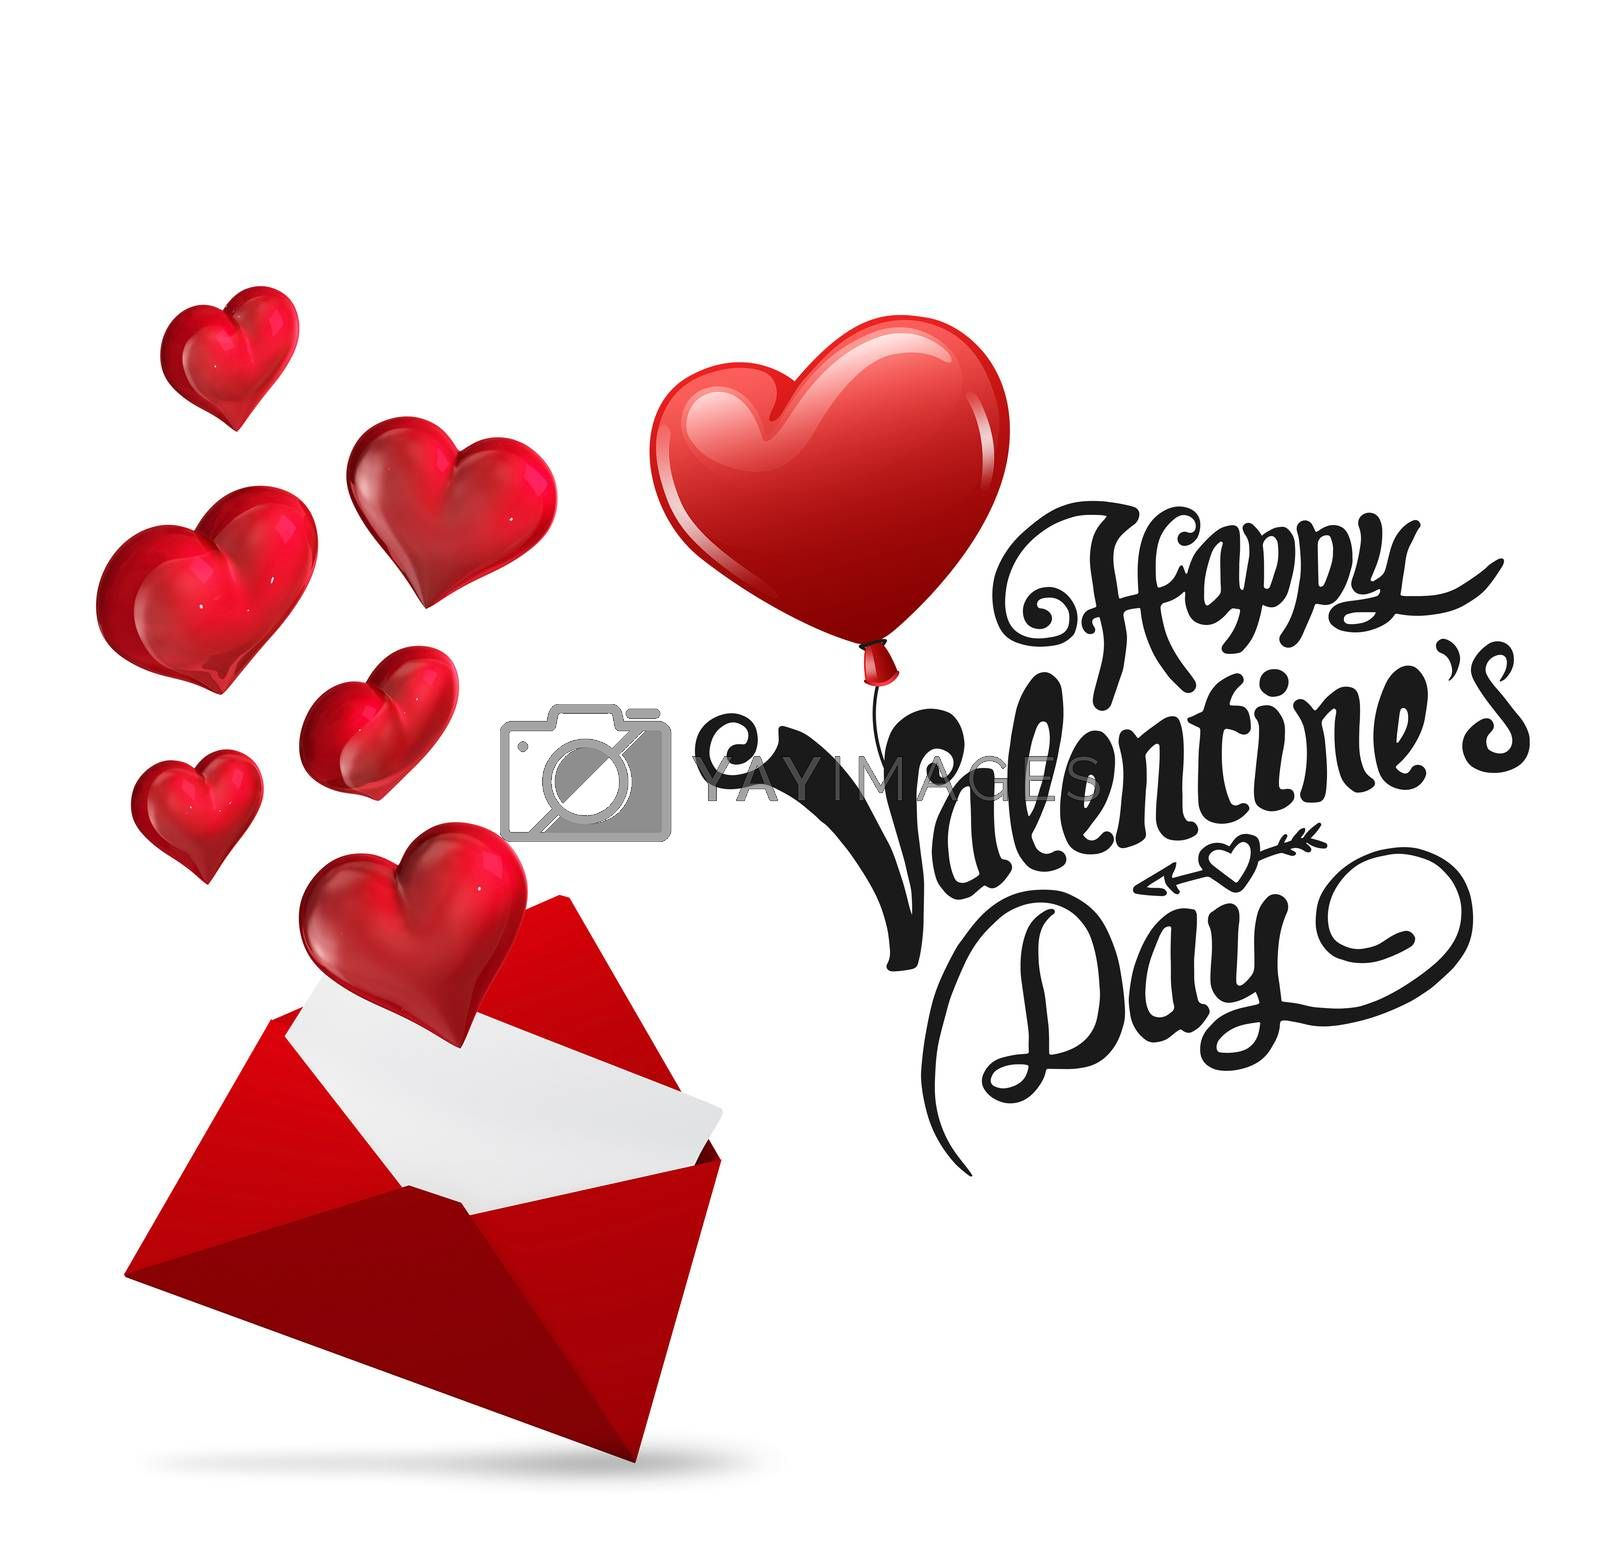 Cute valentines message against love letter